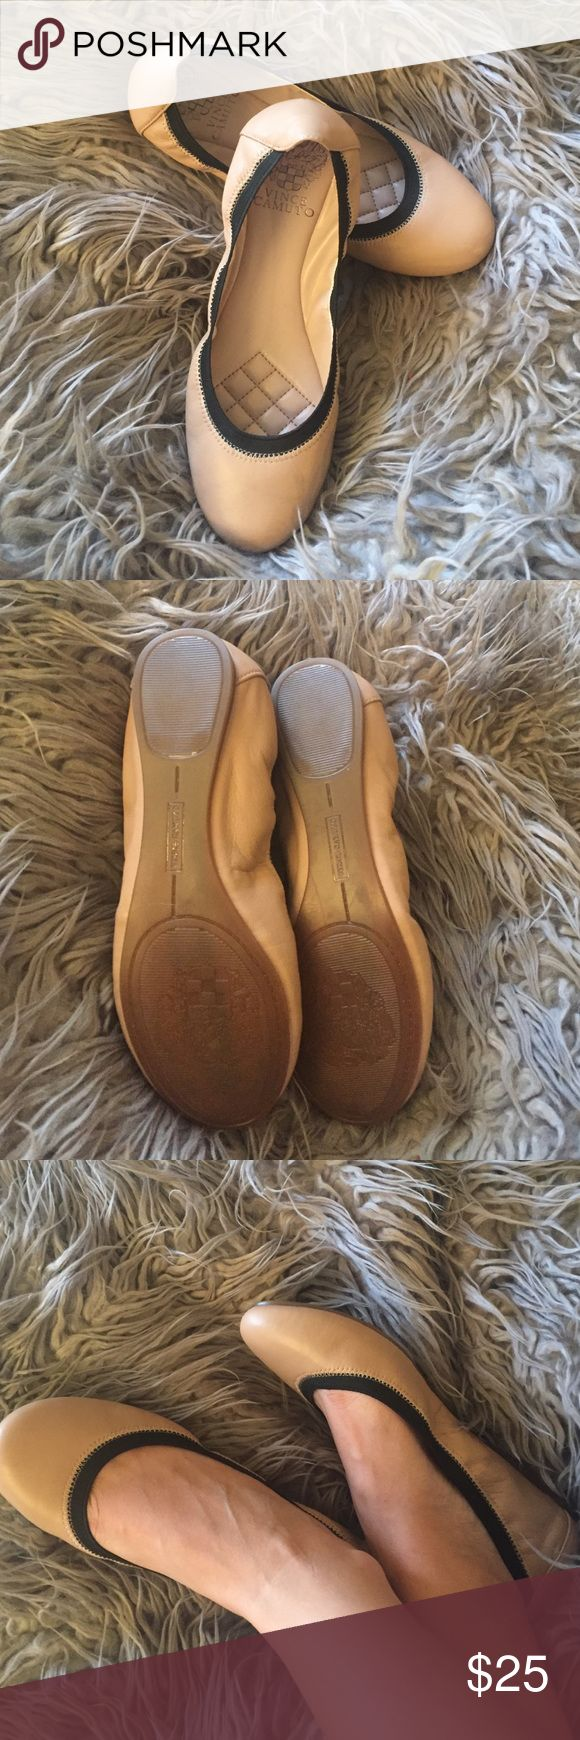 Vince Camuto Eliyah Leather flats sz 6 Beige flats super comfy, never worn. Brand new! Vince Camuto Shoes Flats & Loafers